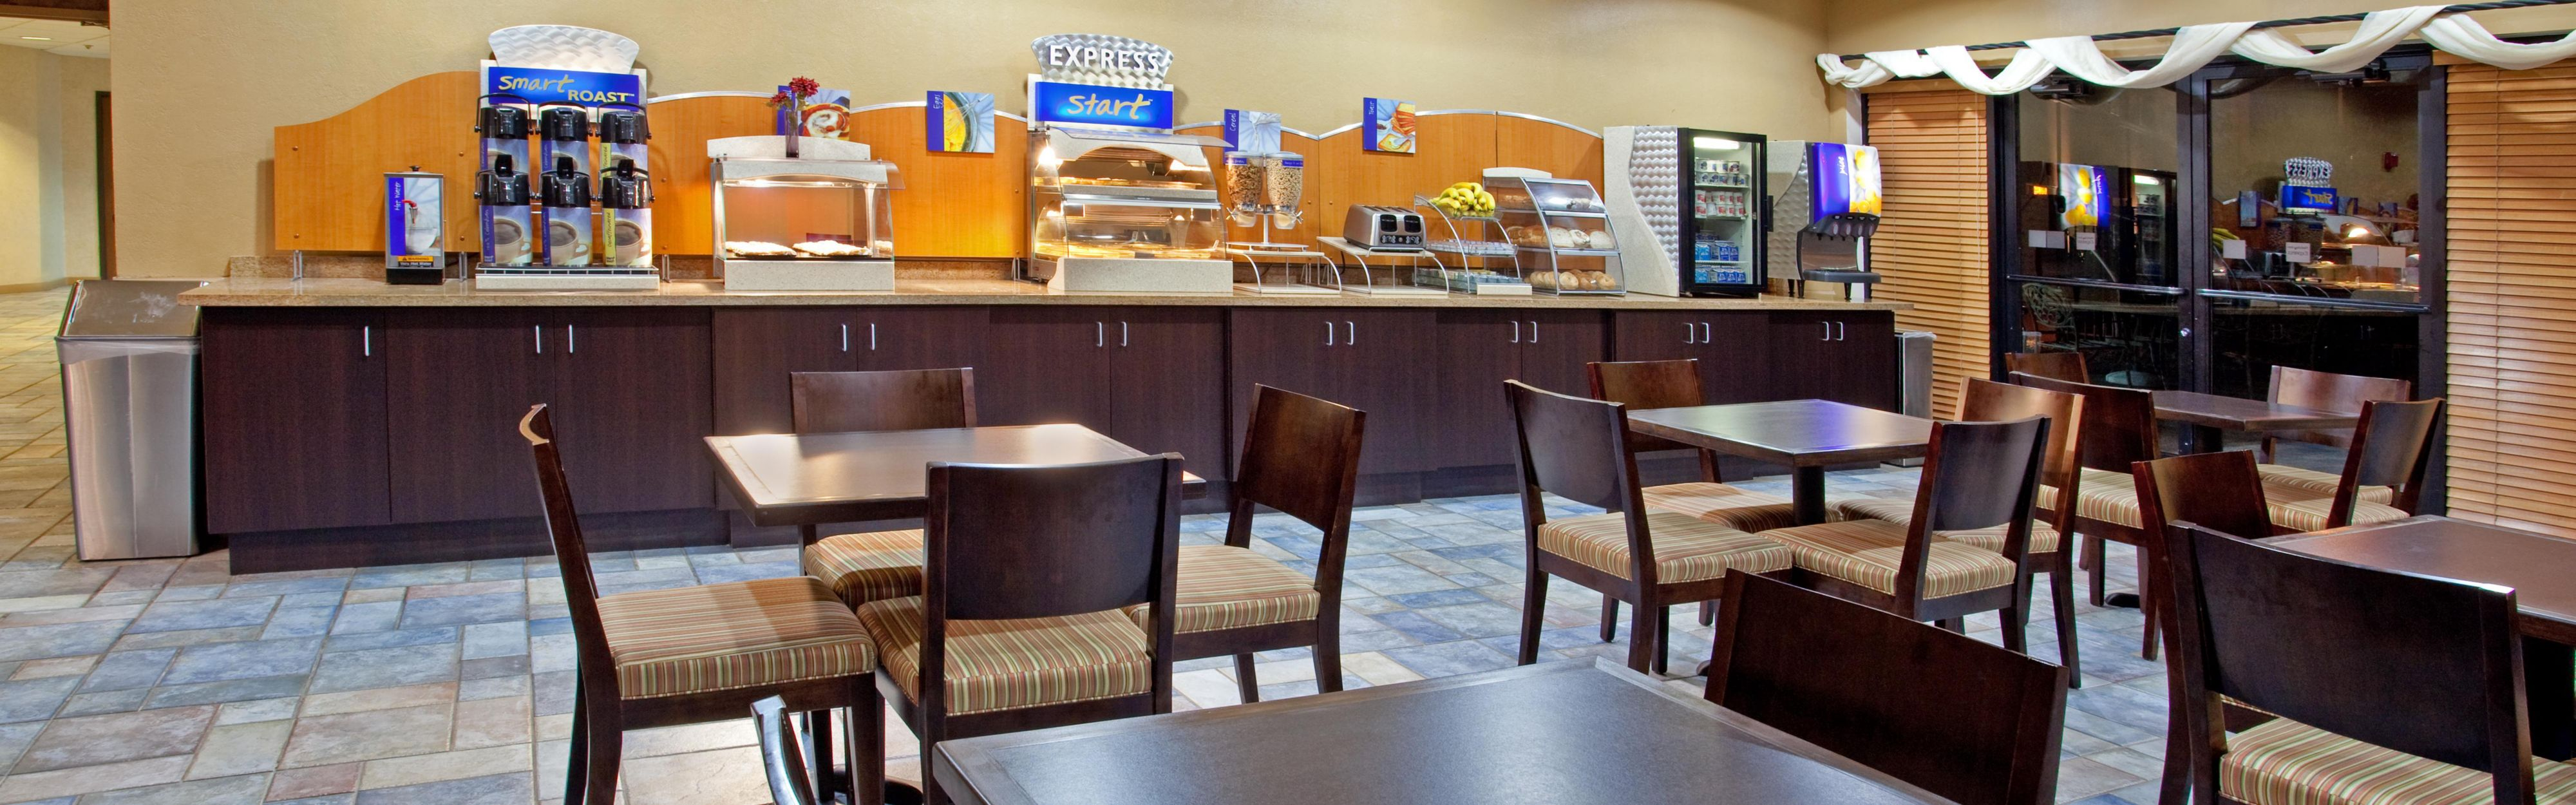 Holiday Inn Express & Suites Phoenix/Chandler (Ahwatukee) image 3